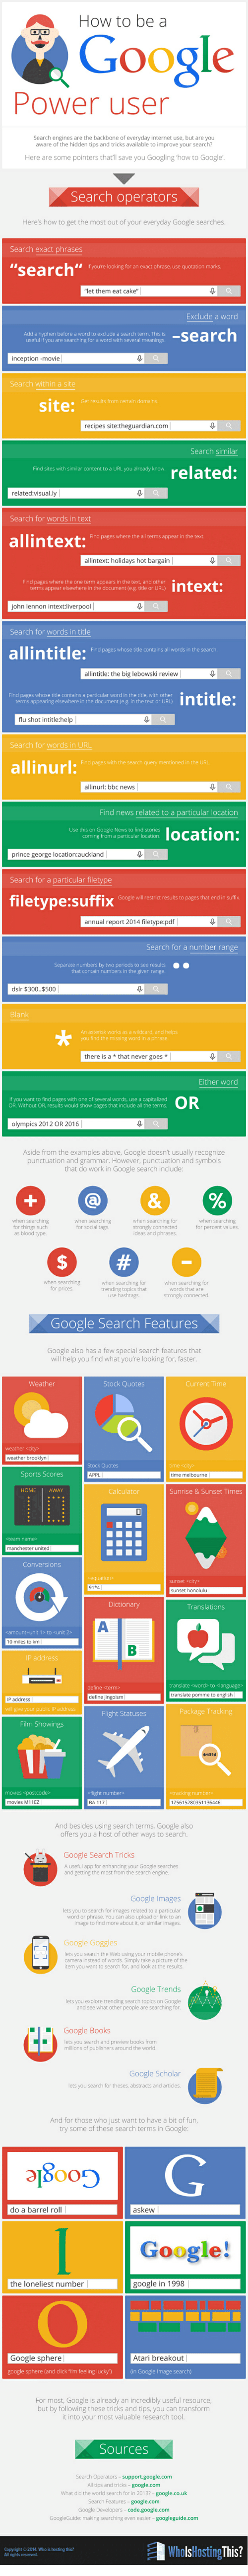 """imags: How to be a  Google  Power user  Hene are sone pointers thar avt you Googin om 0 Googe  Search operators  Here's how toget  e most or of your everyday Gogle 5er,  """"search""""  -search  site  related  allintext:  intext  allintitle:  intitle  allinurl  location  filetype:suffix  2  OR  tpl  that da workin Goole search indude  Google Search Features  s few special search festures  help you End what youre lockn  for  眼 q,  f a  Googe Search Tricks  Googe imags  b)  Googe Trends  Googe Books  oogle Scholar  Google!  Sources  Wholslosting This?"""